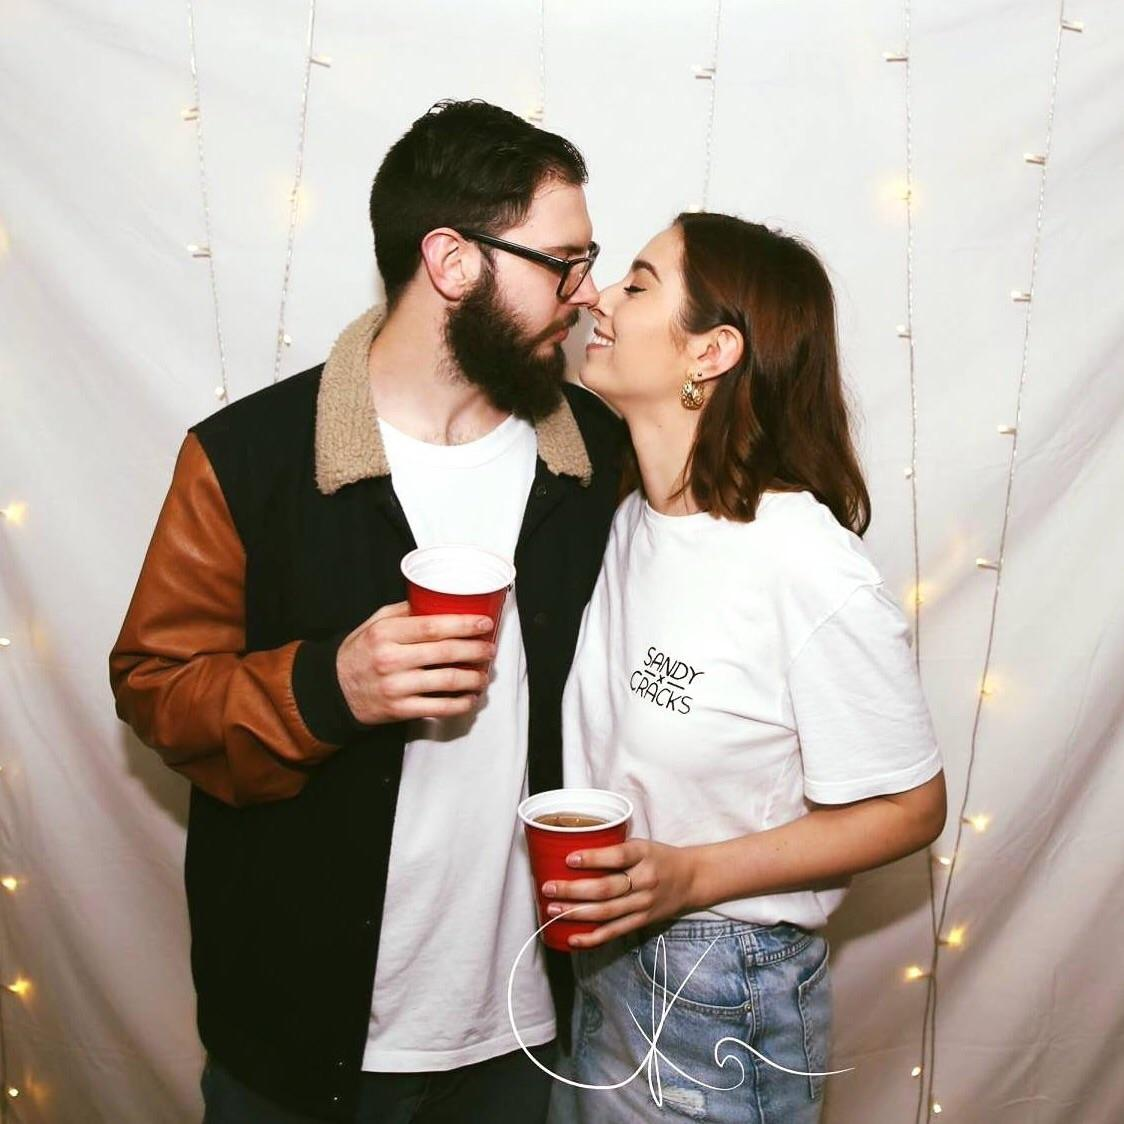 I have been dating a guy for 9 months